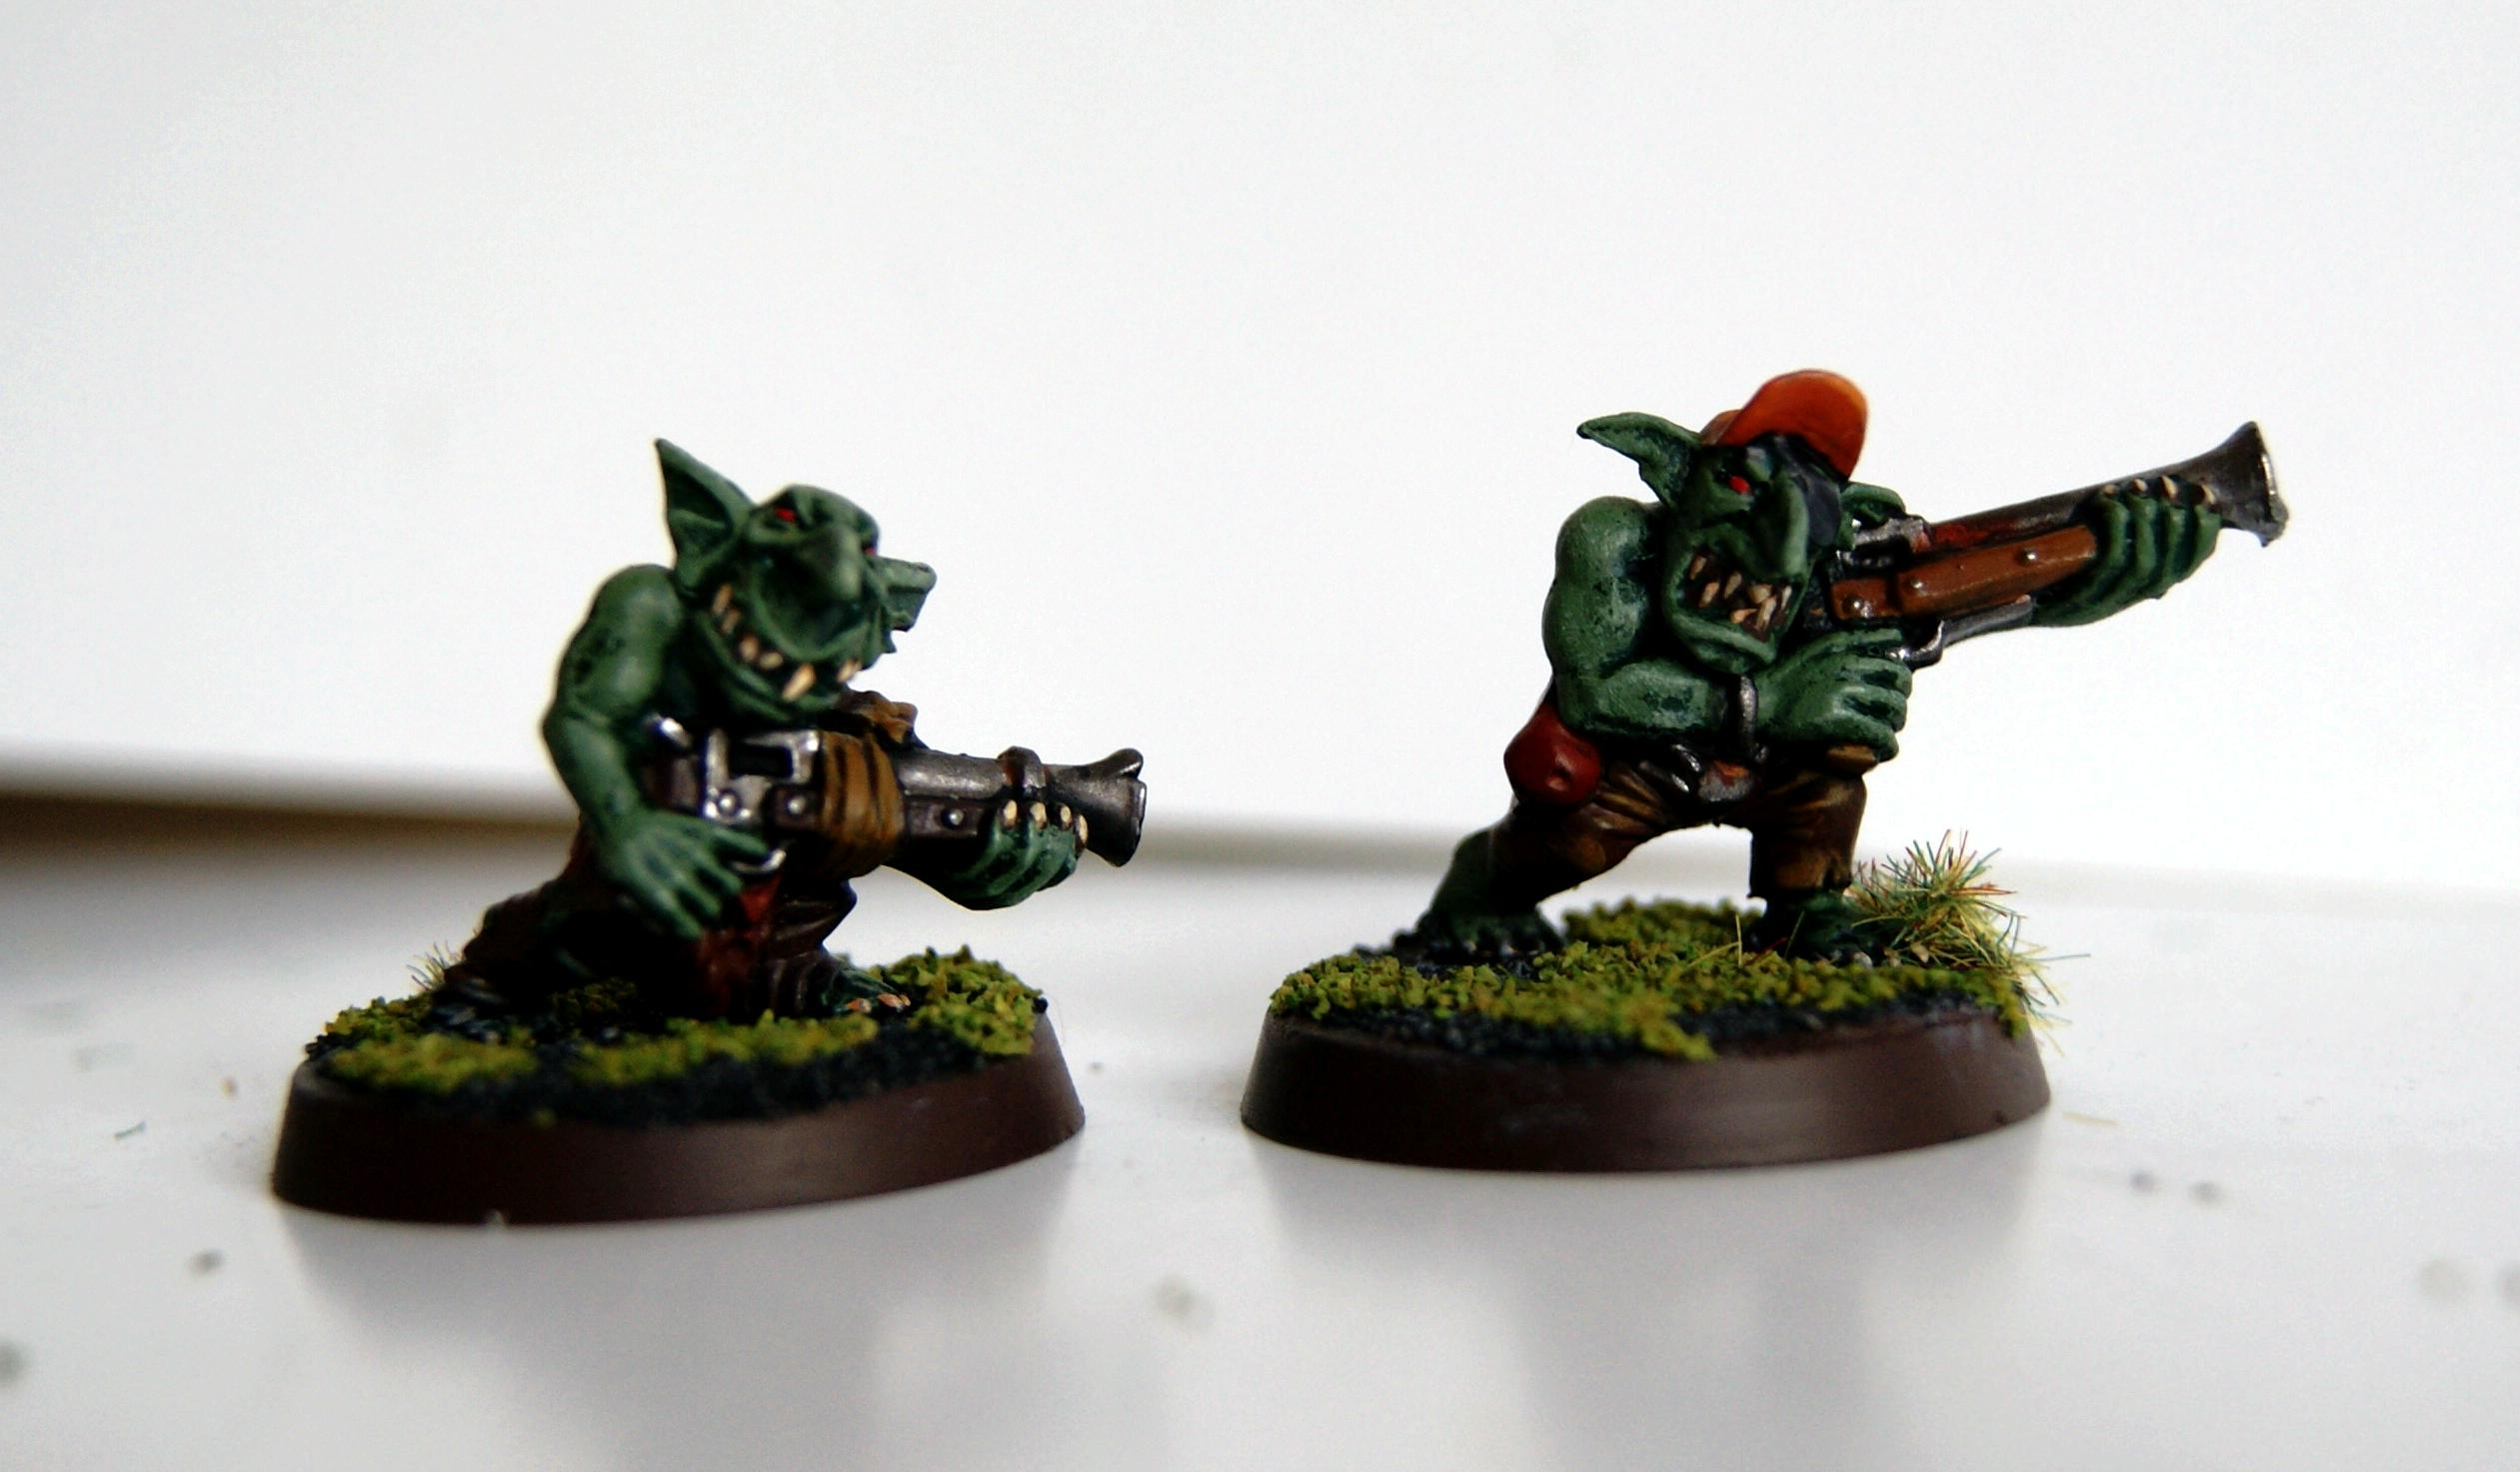 Gretchin, Grot Rebellion, Grot Rebels, Grots, Warhammer 40,000